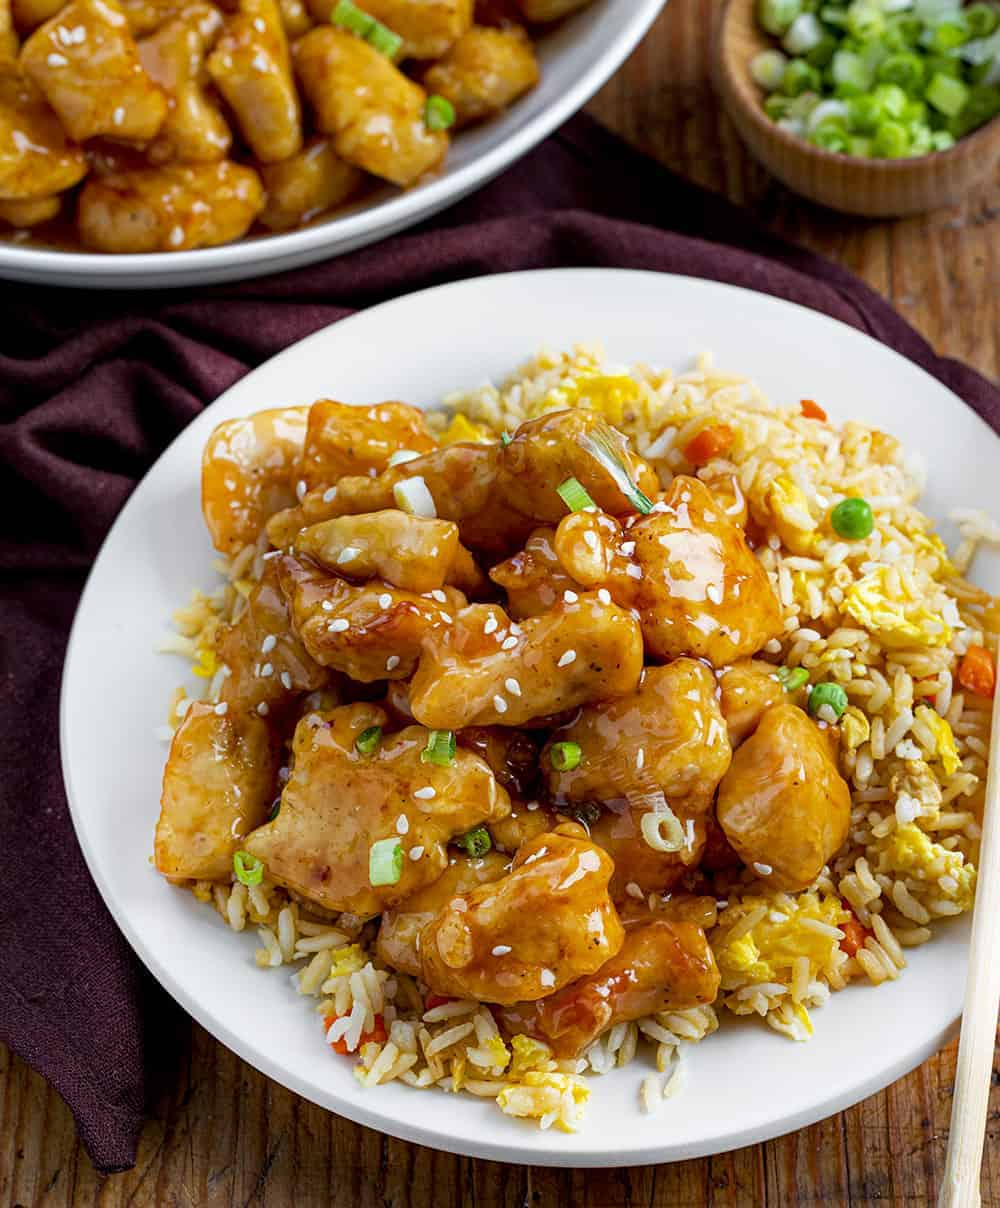 Plate of Sweet & Sour Chicken